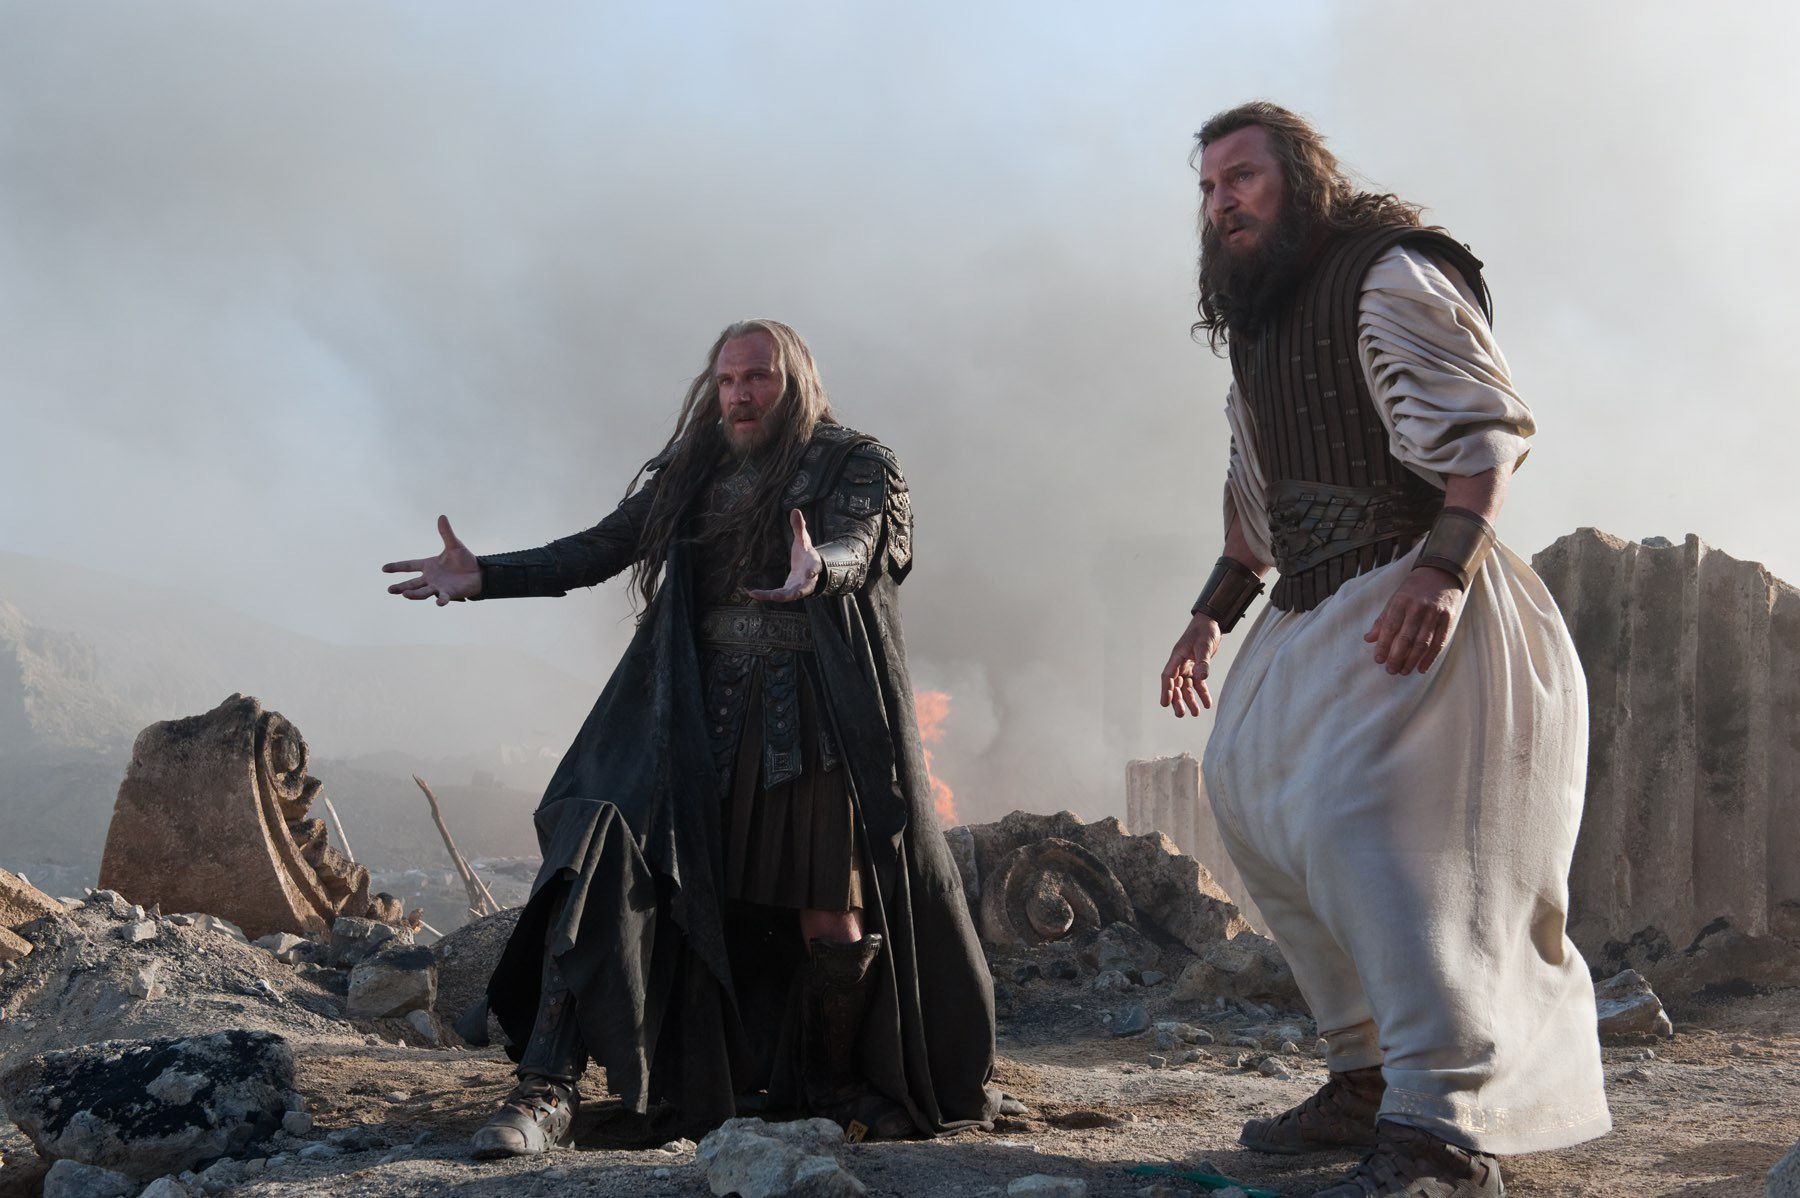 WRATH OF THE TITANS Images Featuring Liam Neeson and Ralph ...